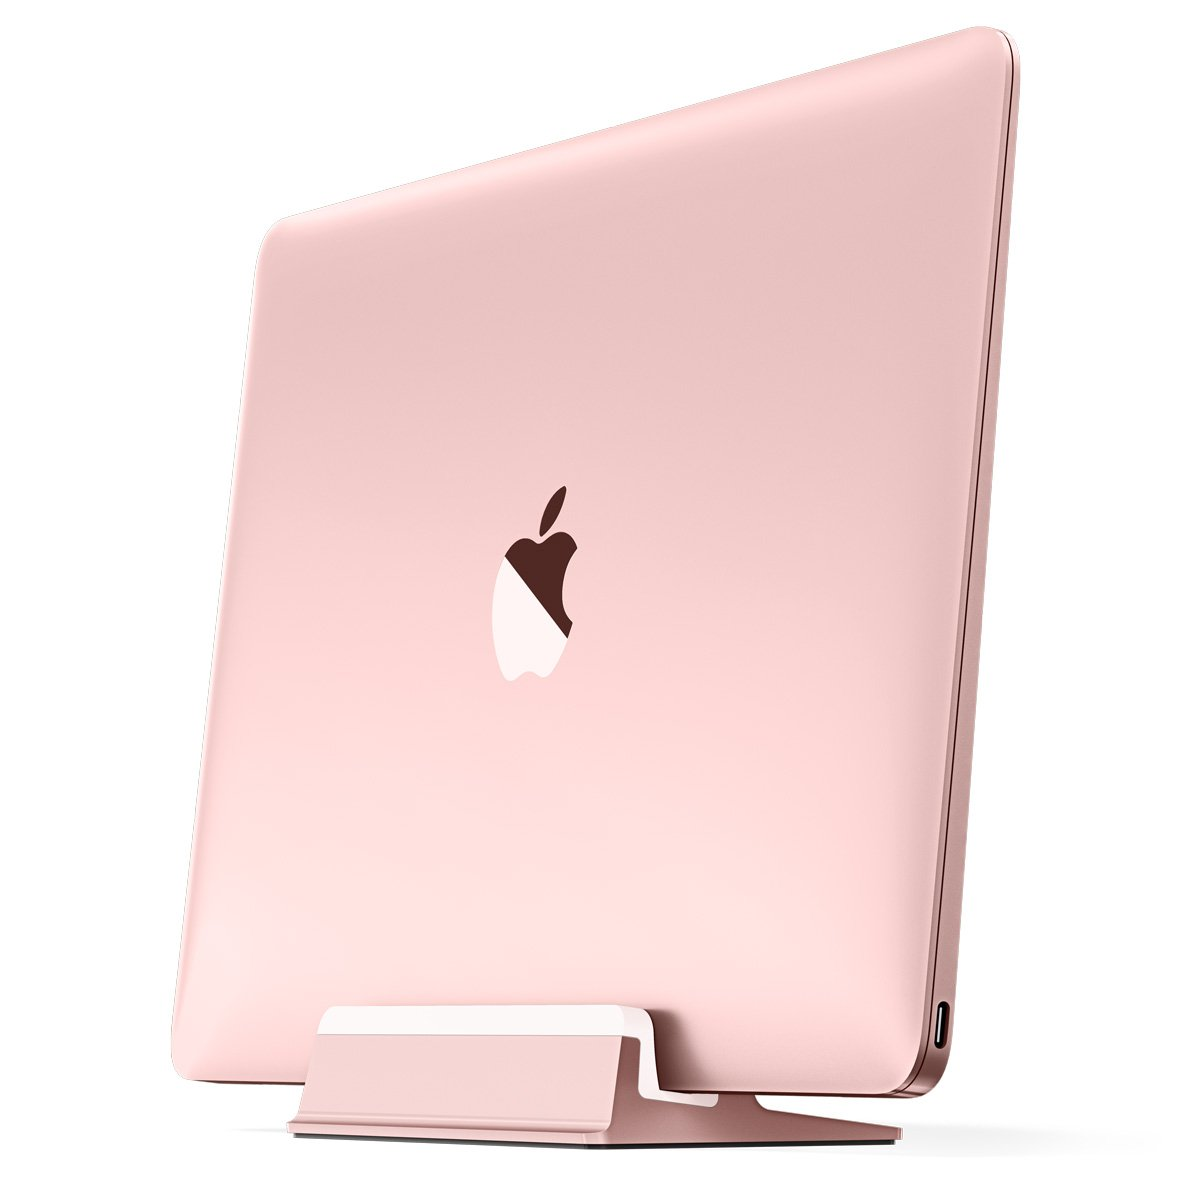 UPPERCASE KRADL Aluminum Vertical Stand for MacBook 12'', Rose Gold/White